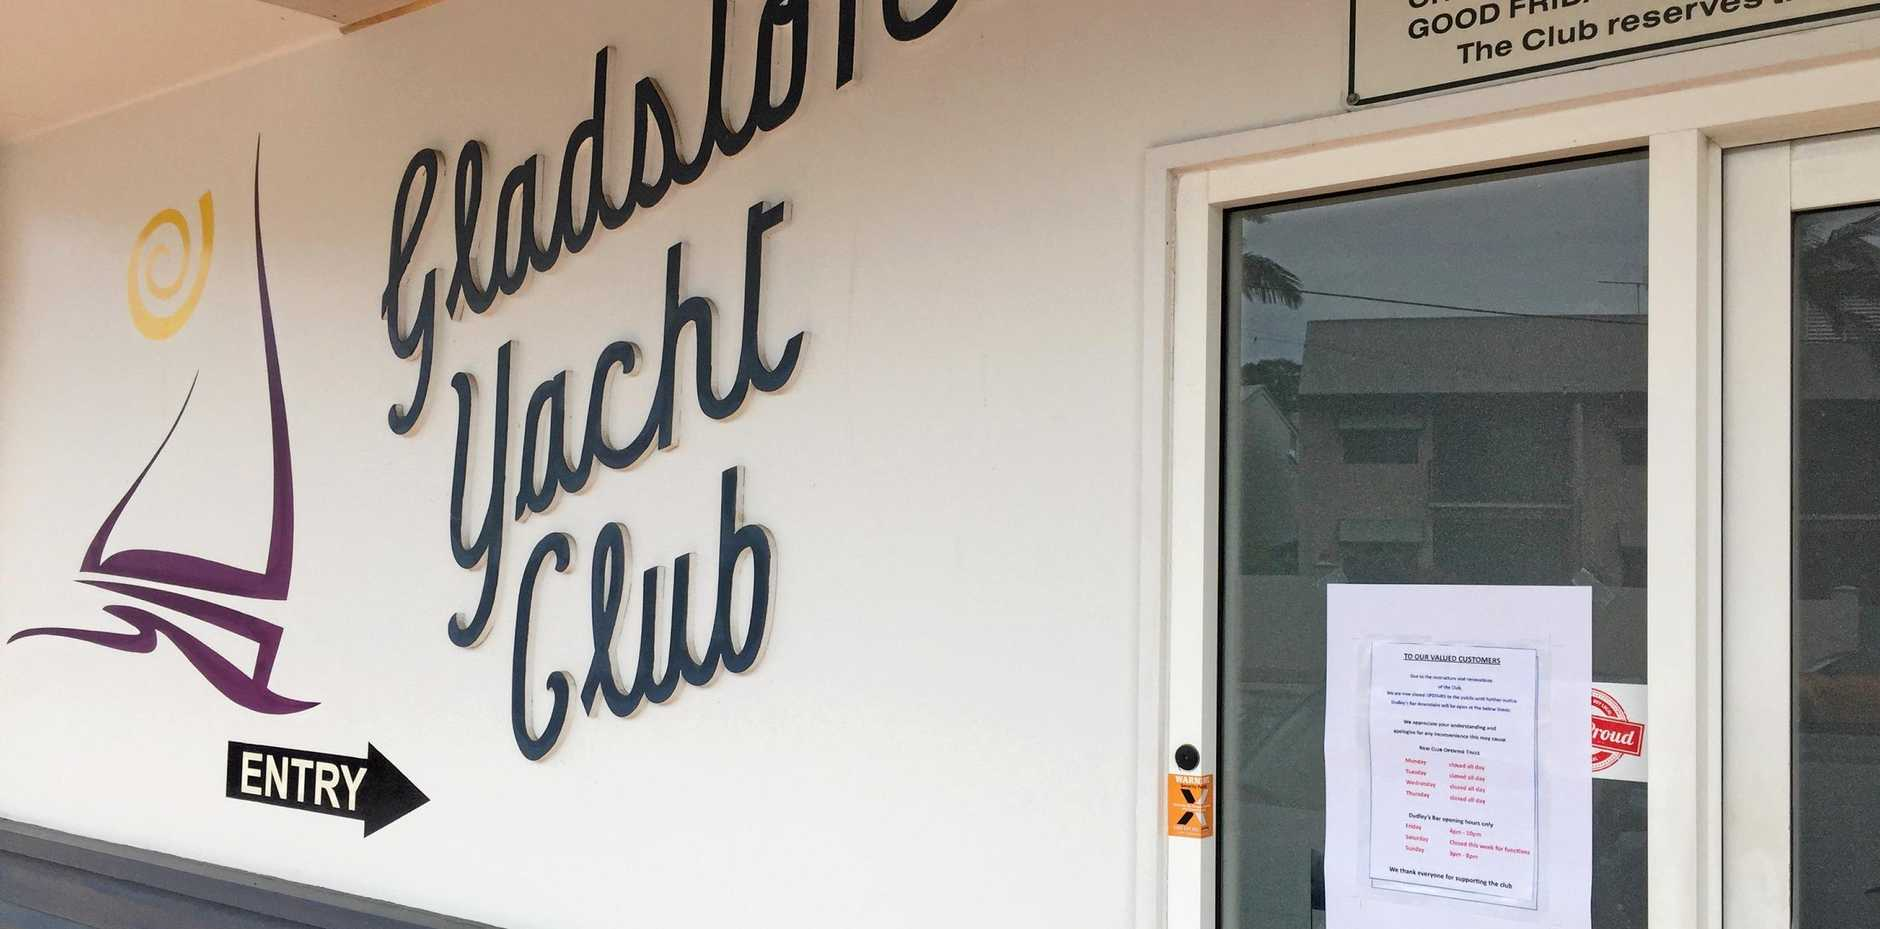 The Gladstone Yacht Club is operating under restricted hours while it undergoes financial restructuring.